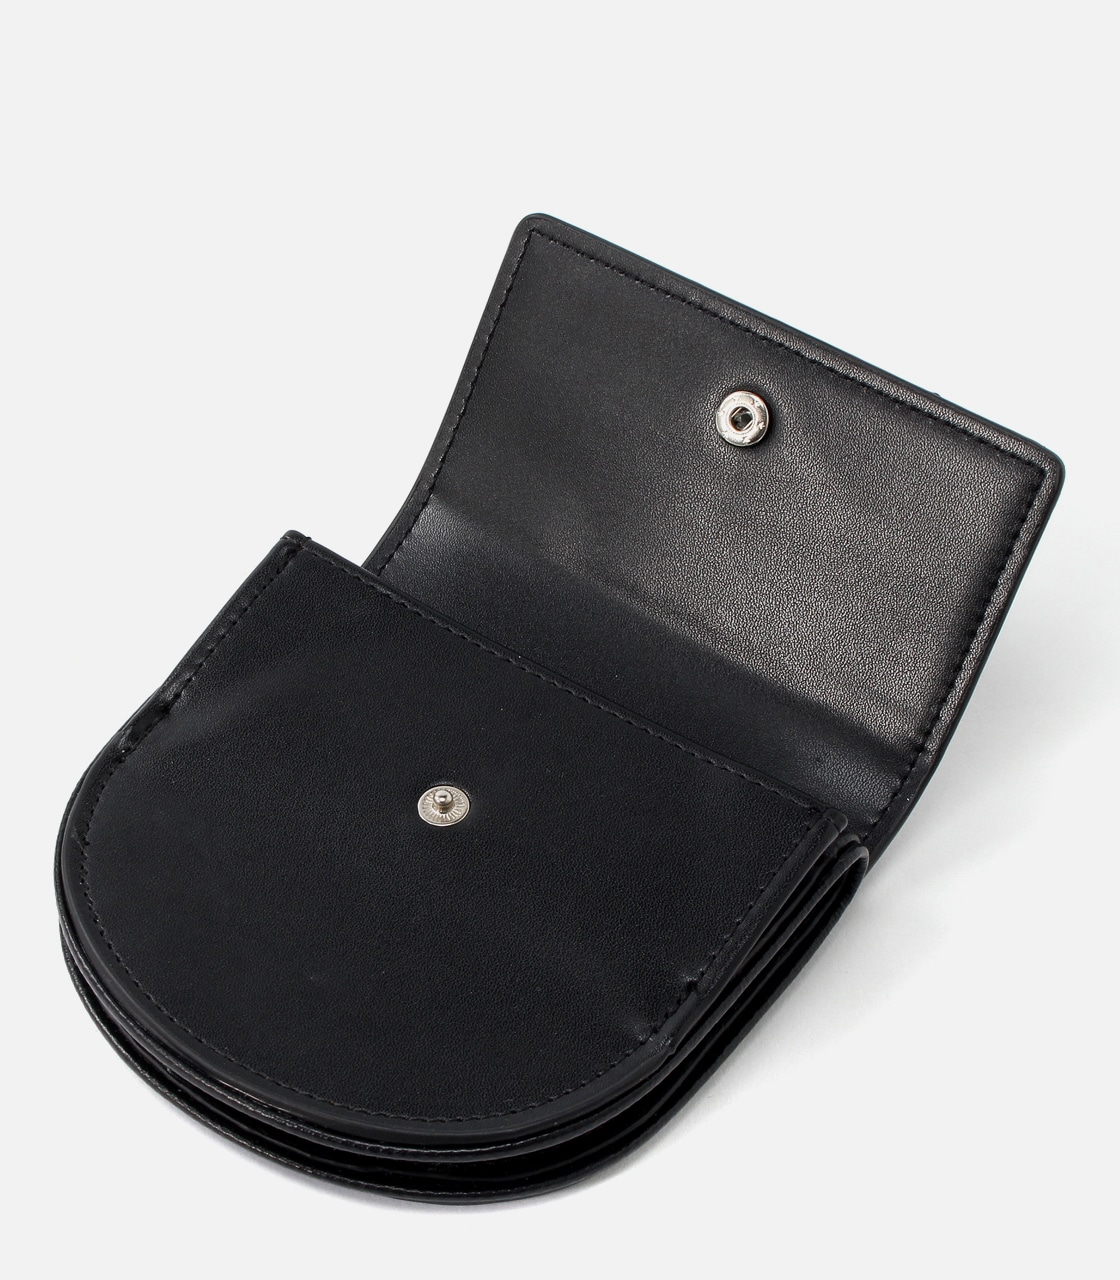 【AZUL BY MOUSSY】HARF ROUND WALLET 詳細画像 BLK 6